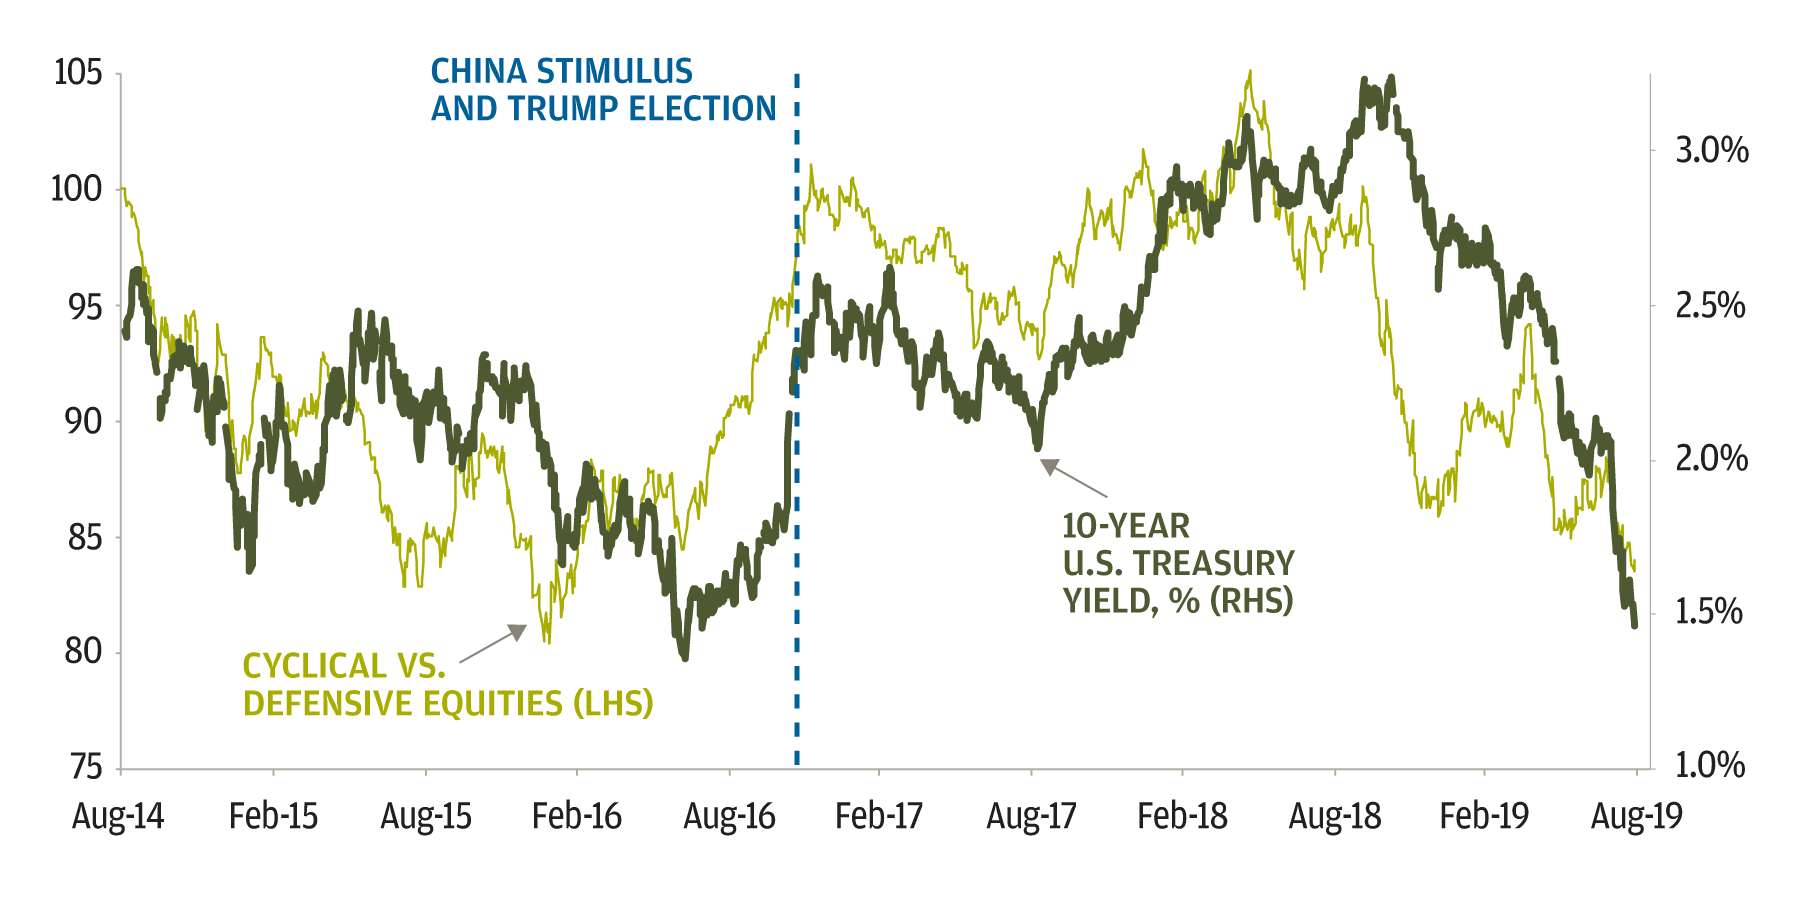 Line chart compares Cyclicals vs. Defensives and the 10-year U.S. Treasury yield from August 2014 through August 2019. From October 2016 through August 2018, both lines trend upward (a period of cyclical leadership and high yields), but then decline back to levels they were at between February 2015 to September 2016.